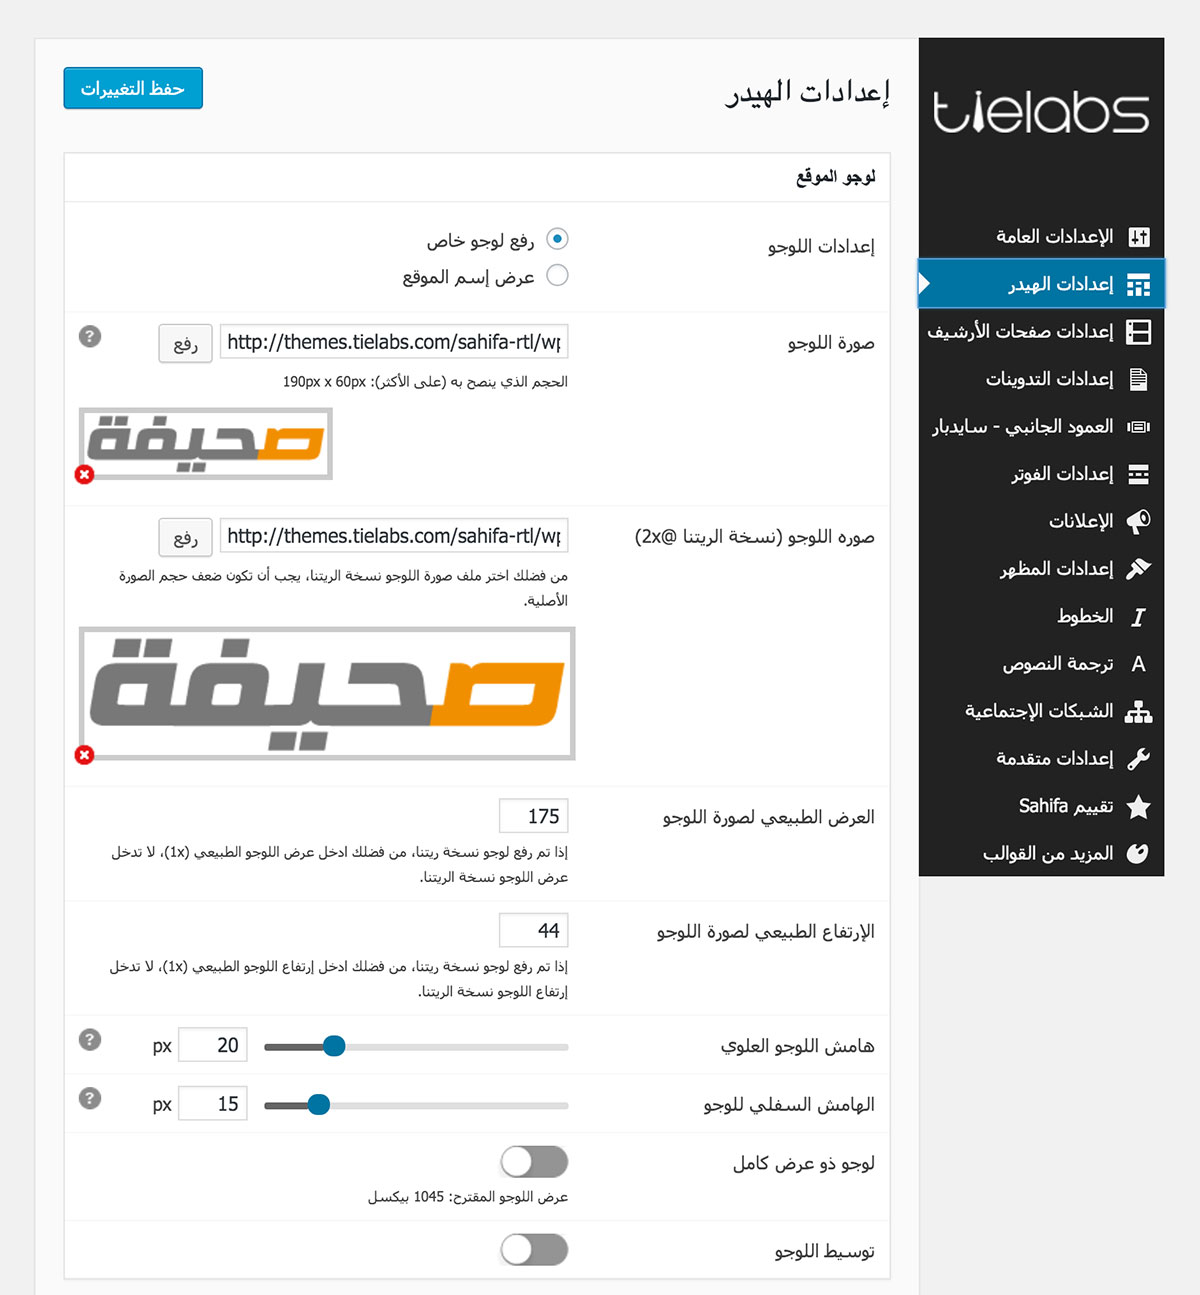 sahifa-arabic-dashboard-header